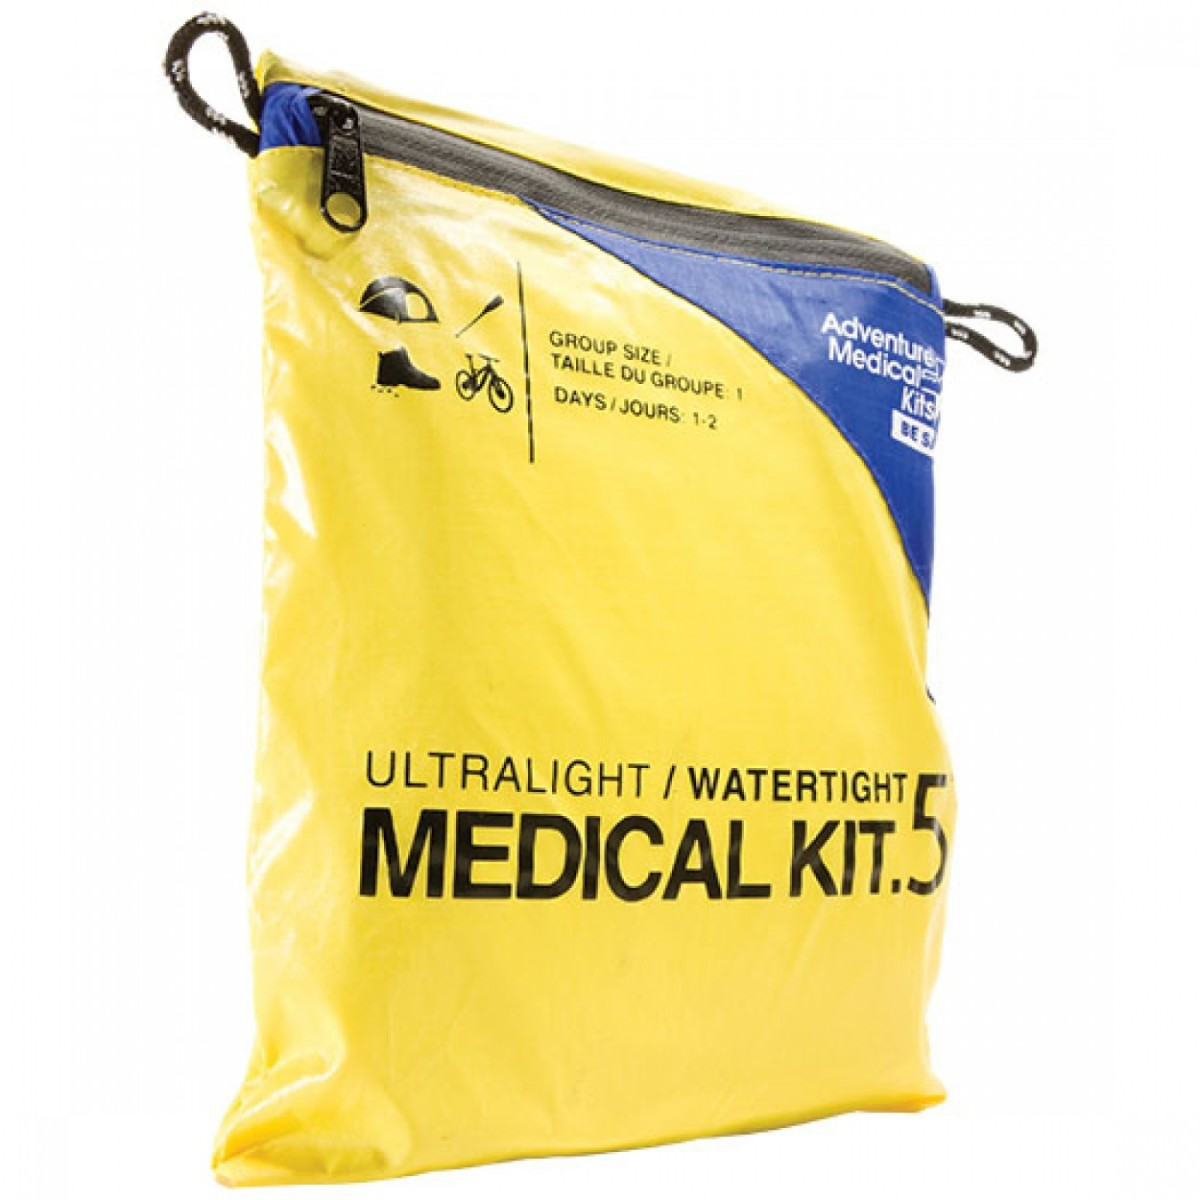 Adventure Medical Kits Ultralight / Watertight .5